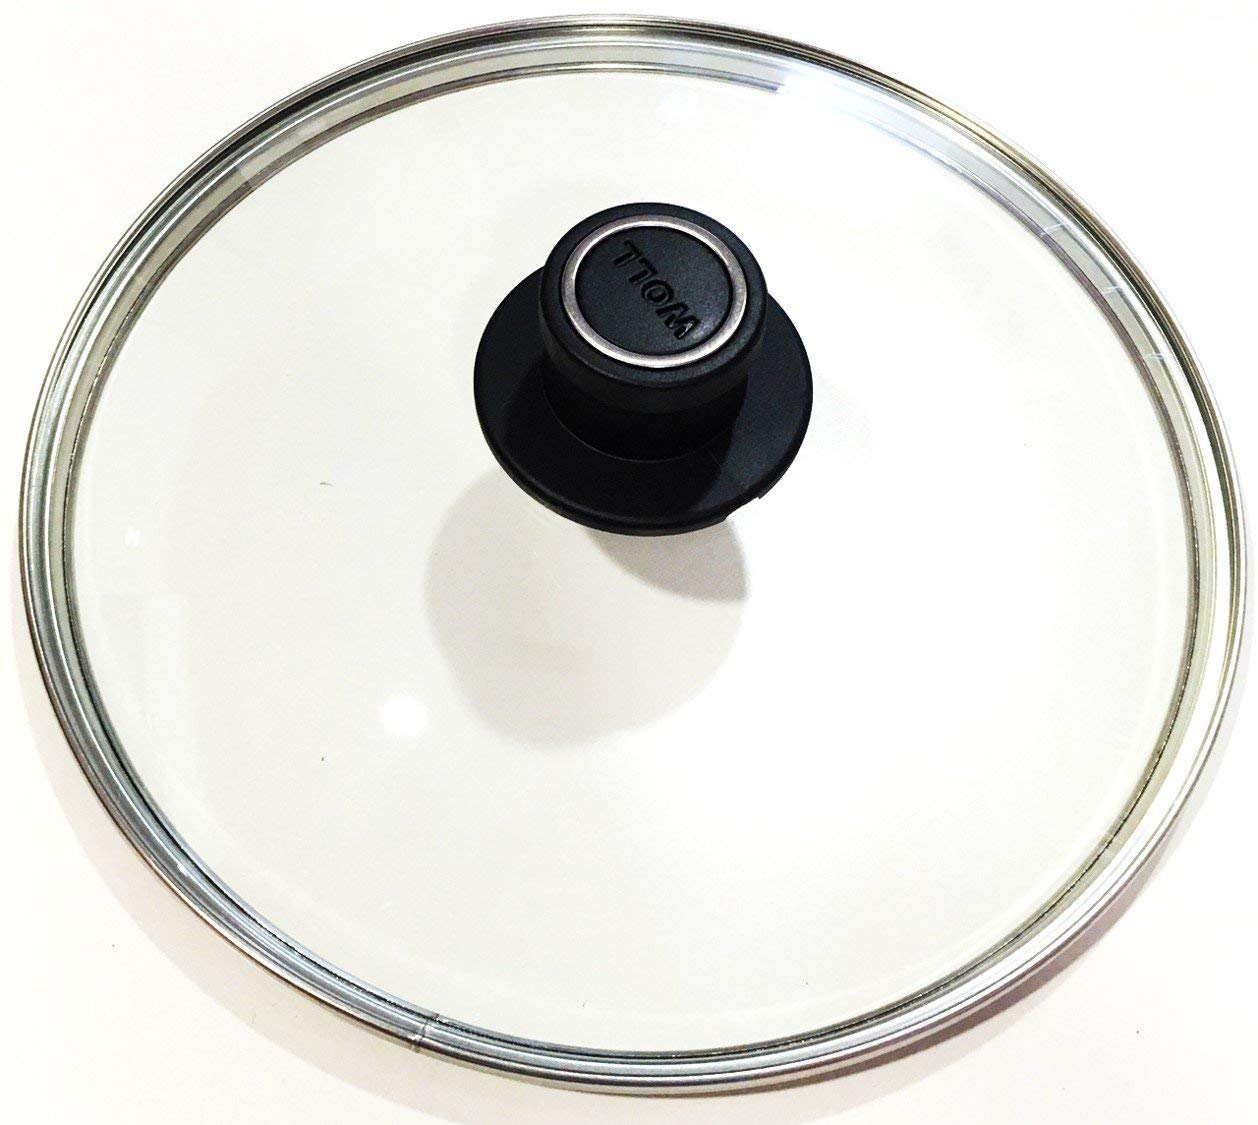 Woll Tempered Glass with Stainless Steel Rim and Vented Knob Round Lid, 8'', Clear by Woll (Image #2)